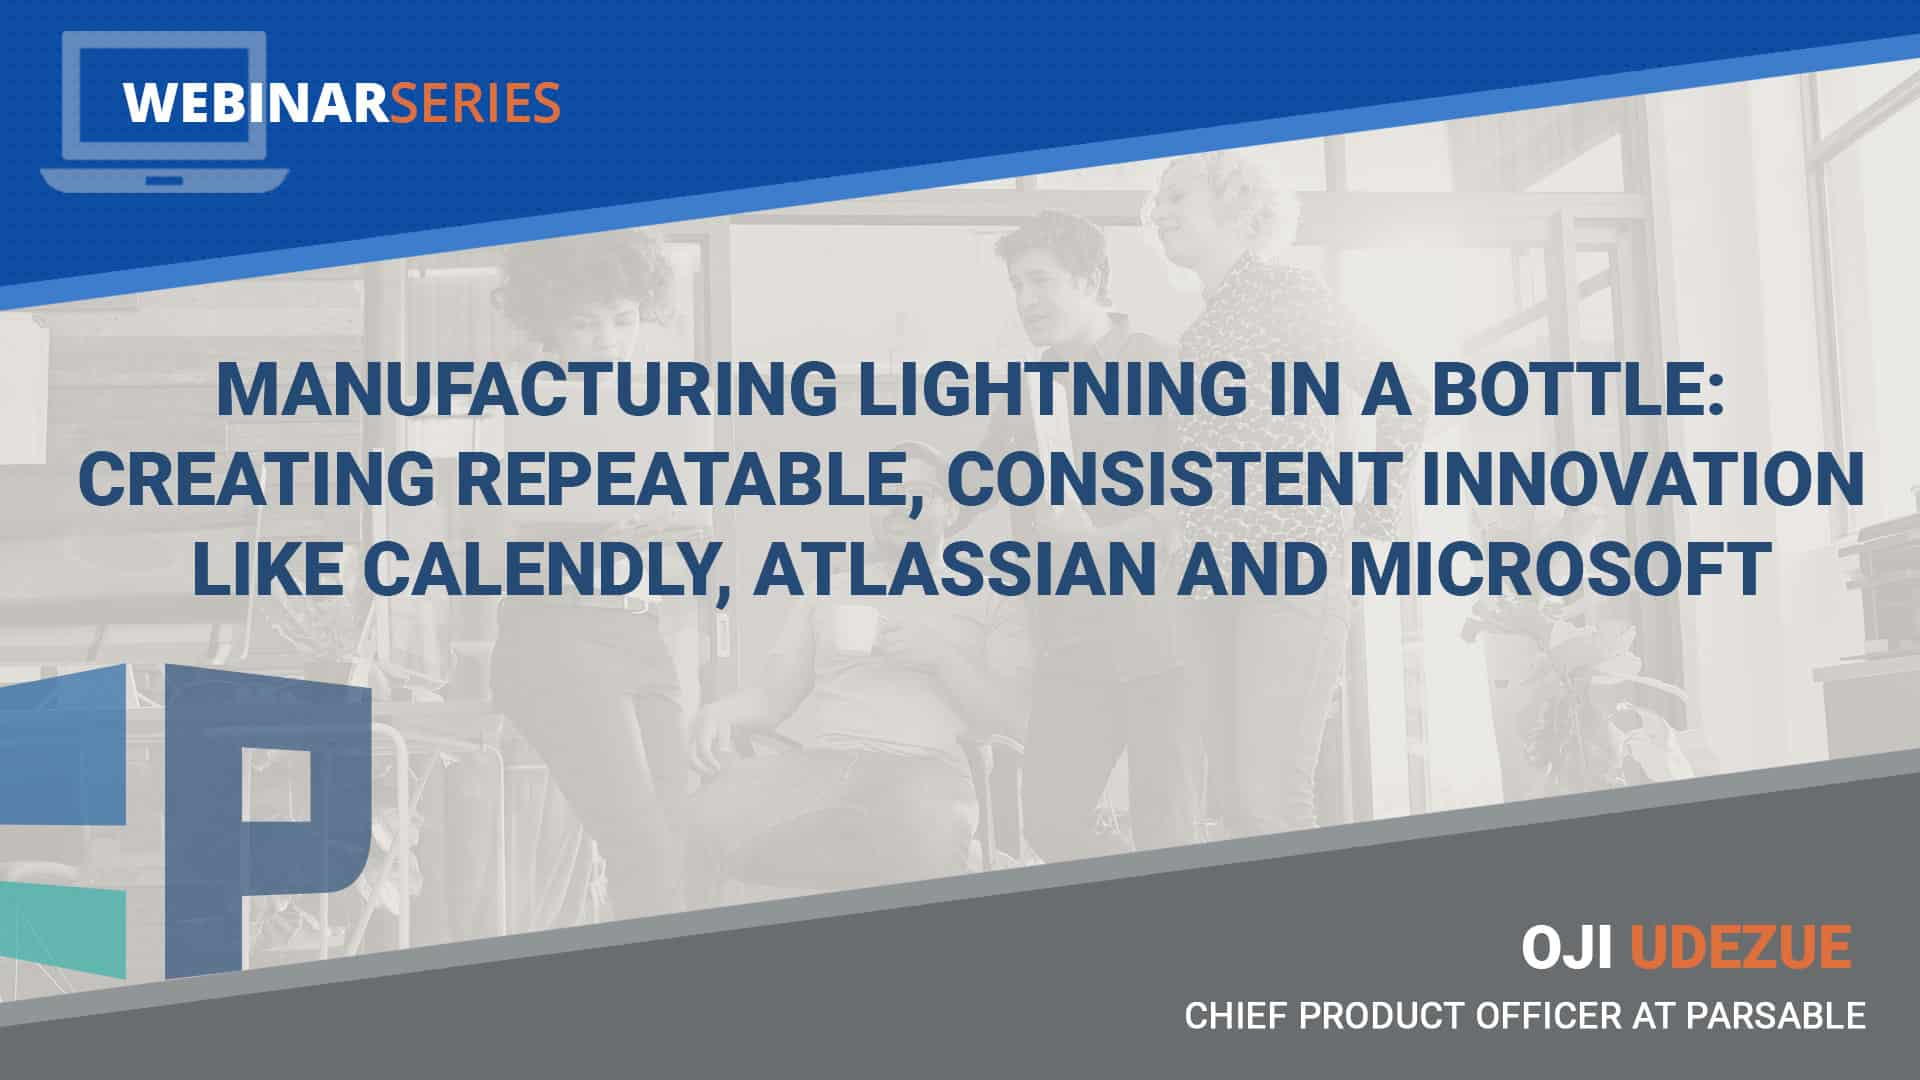 Manufacturing Lightning in a Bottle: Creating Repeatable, Consistent Innovation like Calendly, Atlassian and Microsoft